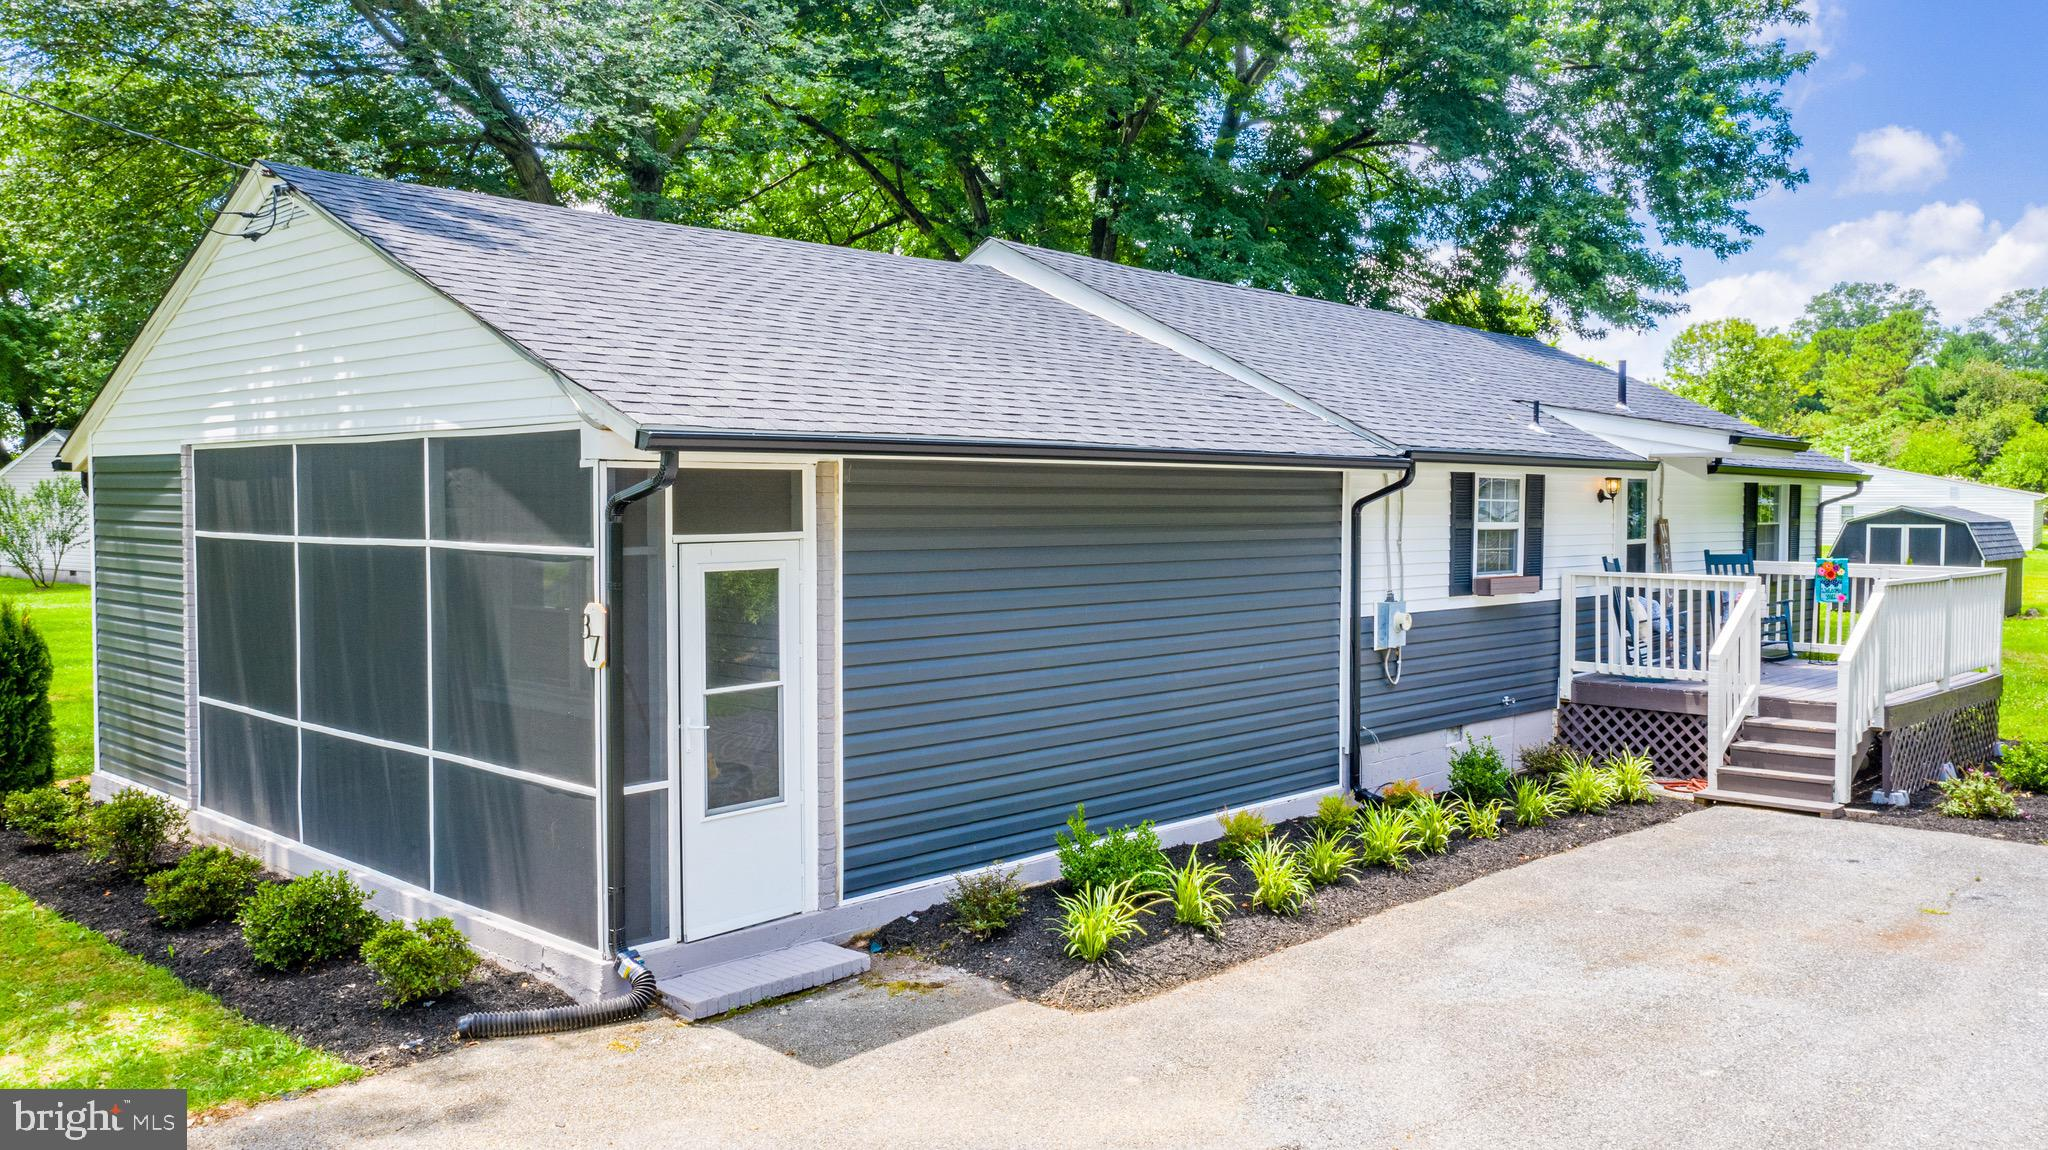 Come see this completely remodeled 3-bedroom, 1.5 half bath Hartly home that is move-in ready! As soon as you pull into the driveway you'll see the newly installed roof (June 2021) and newly installed vinyl siding (June 2021). Beautiful landscaping surrounds this gem. When you open the front door you are  greeted by the bright and airy kitchen that includes a new Whirlpool stainless-steel refrigerator, range with double oven and convection, dishwasher and built-in microwave. An eye-catching backsplash, quartz countertops, recessed lights and an island makes this kitchen to die for! The new central A/C is sure to keep the heat down as it was replaced (June 2021). The entire home has newly installed neutral vinyl planked flooring, except in the spacious family room — which has newly installed carpet and a shiplap accent wall. Other desirable features are a shiplap accent walls in the half bath along with a new toilet and vanity. The washer and dryer is also included and is AS-IS. The renovated full bath has a brand-new vanity and elegant ceramic tile design that even has an alcove for soap and shampoos. The three bedrooms each have new ceiling fans and walk-in closets. This turn key home also an attic for extra storage. You'll find  three ways to enter into this freshly-painted home: front entrance with a deck that leads to the kitchen; back entrance with new Pella sliding glass doors off the dining room to a second deck, and the side entrance has a screened-in porch that is off the high-ceiling family room. All three entrances are the perfect areas to enjoy a tall glass of lemonade as you admire the landscaping and mature trees in this well-maintained yard. The roomy shed also has a new roof (June 2021). Make an appointment to see it today . . . it won't last long!